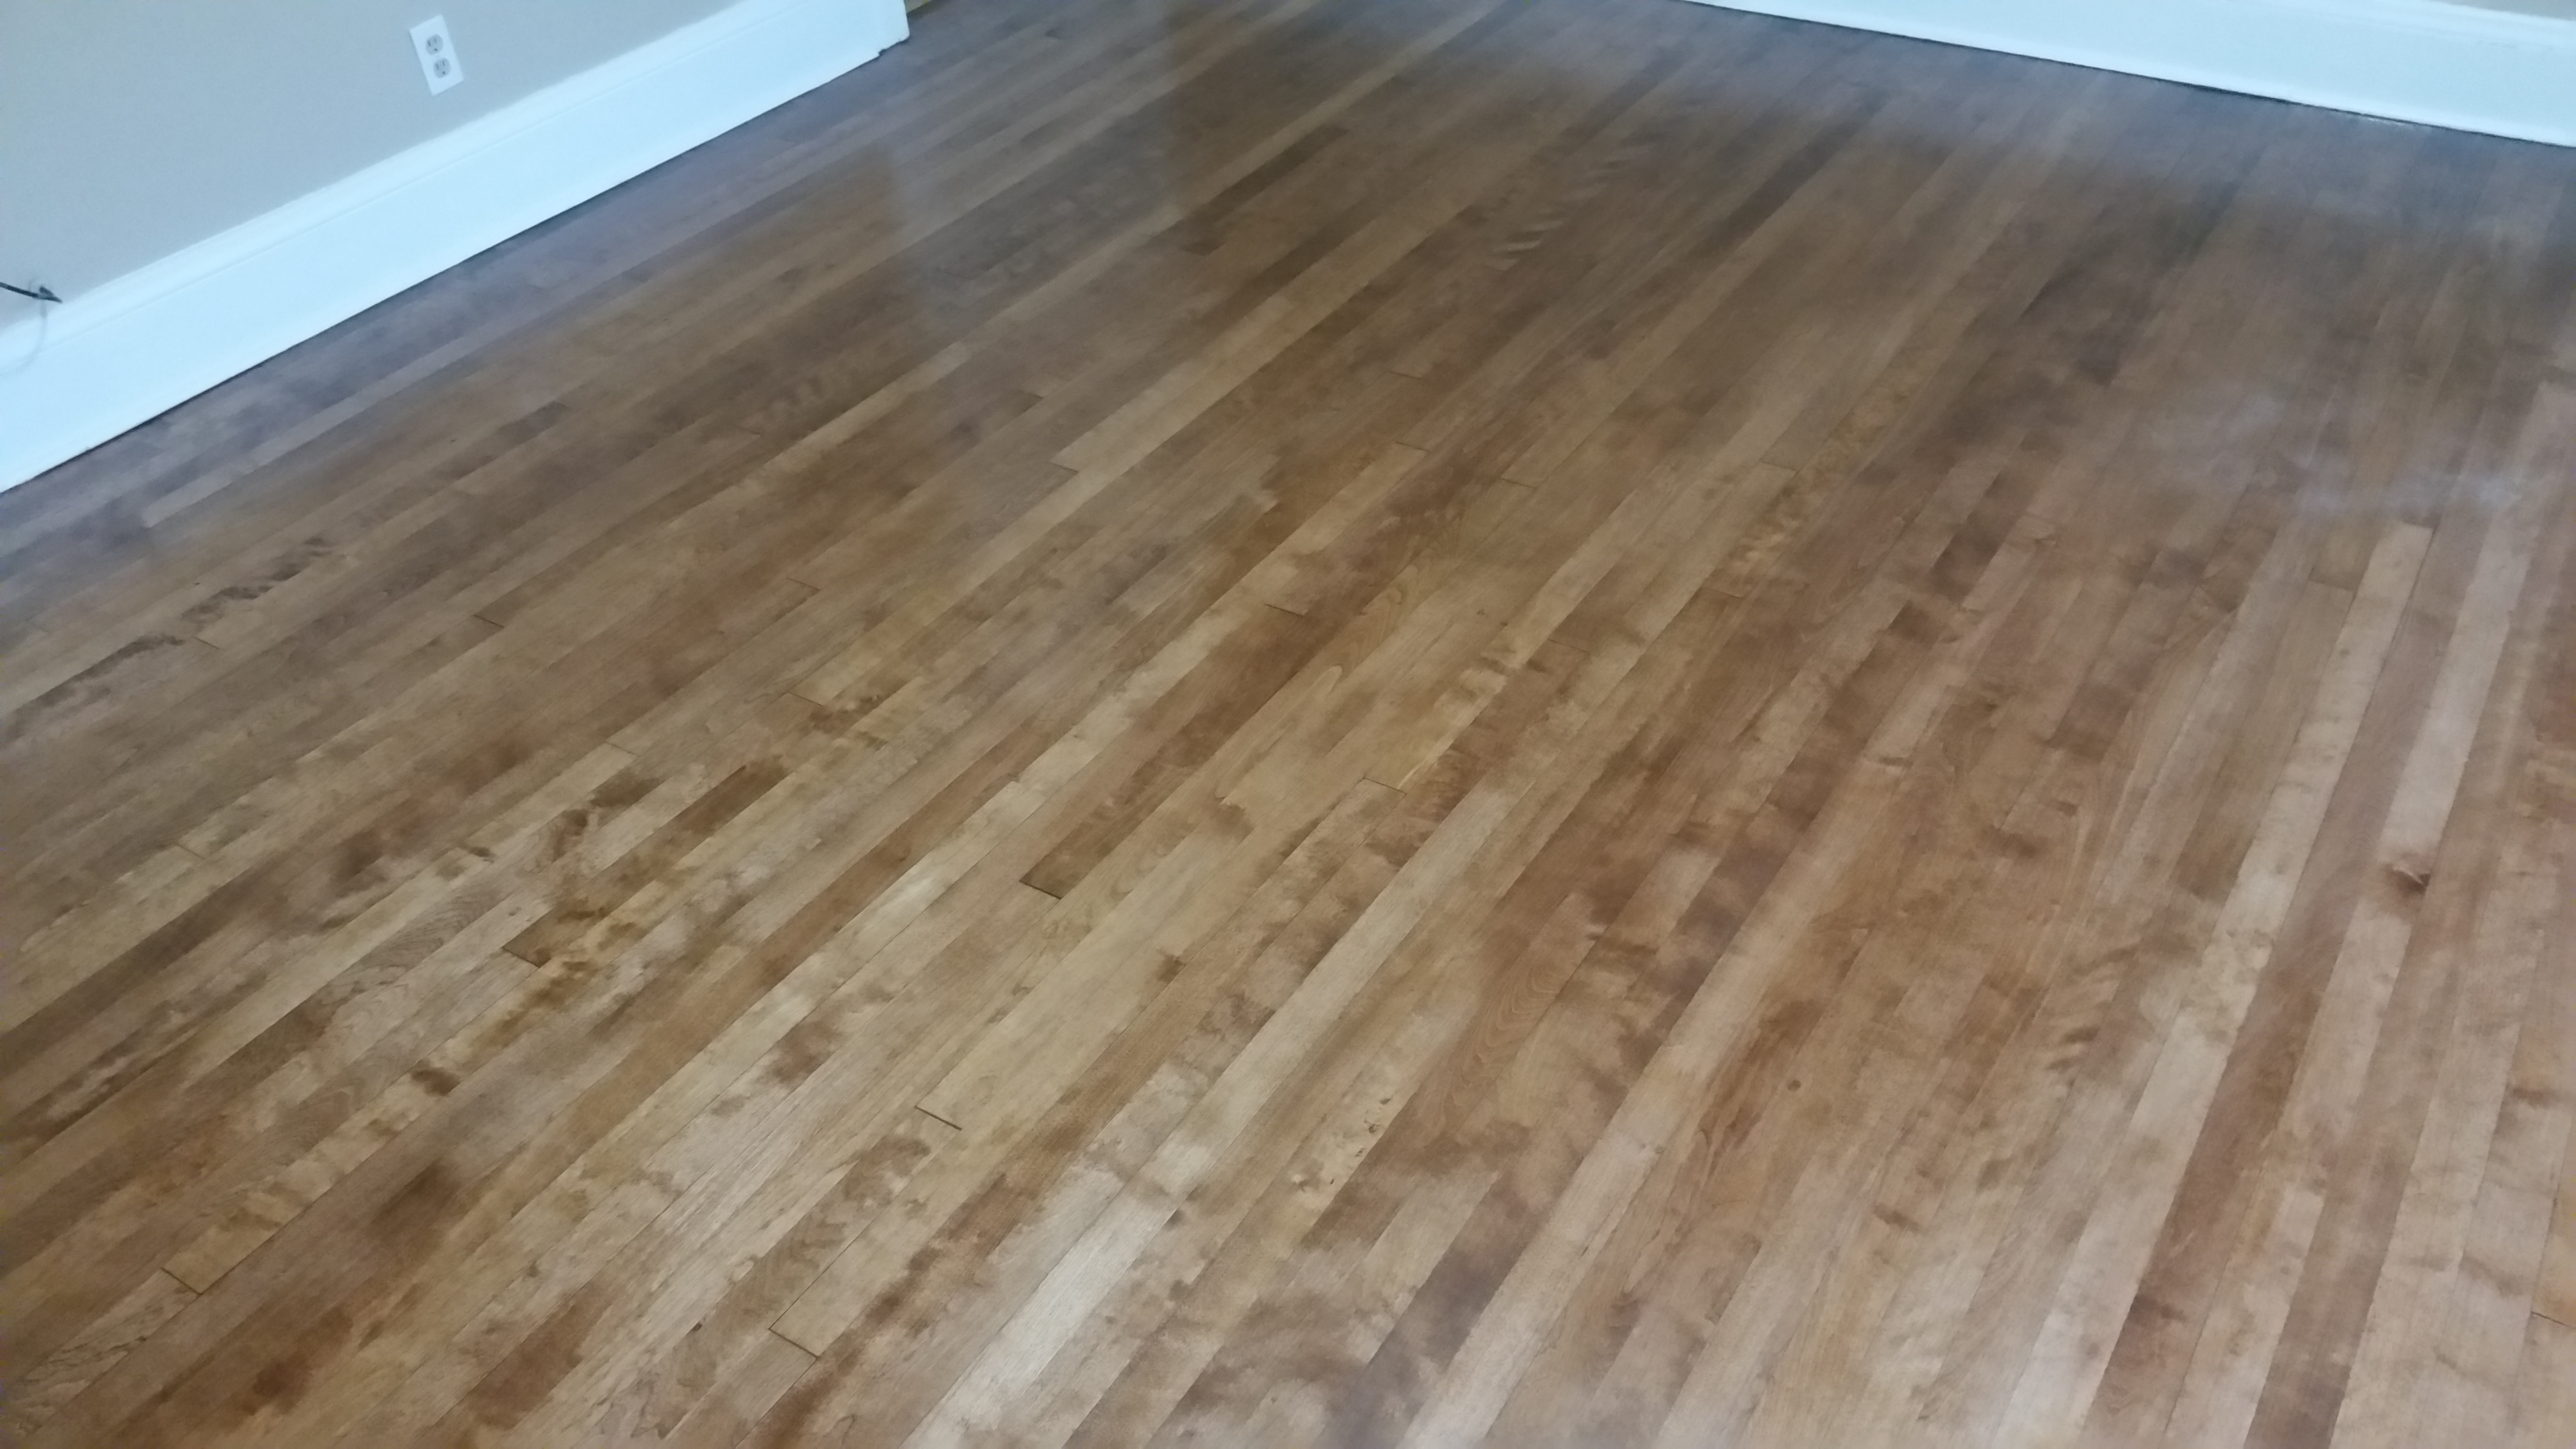 hardwood floor refinishing utica ny of rochester hardwood floors of utica home throughout 20151028 104648 20160520 161308resize